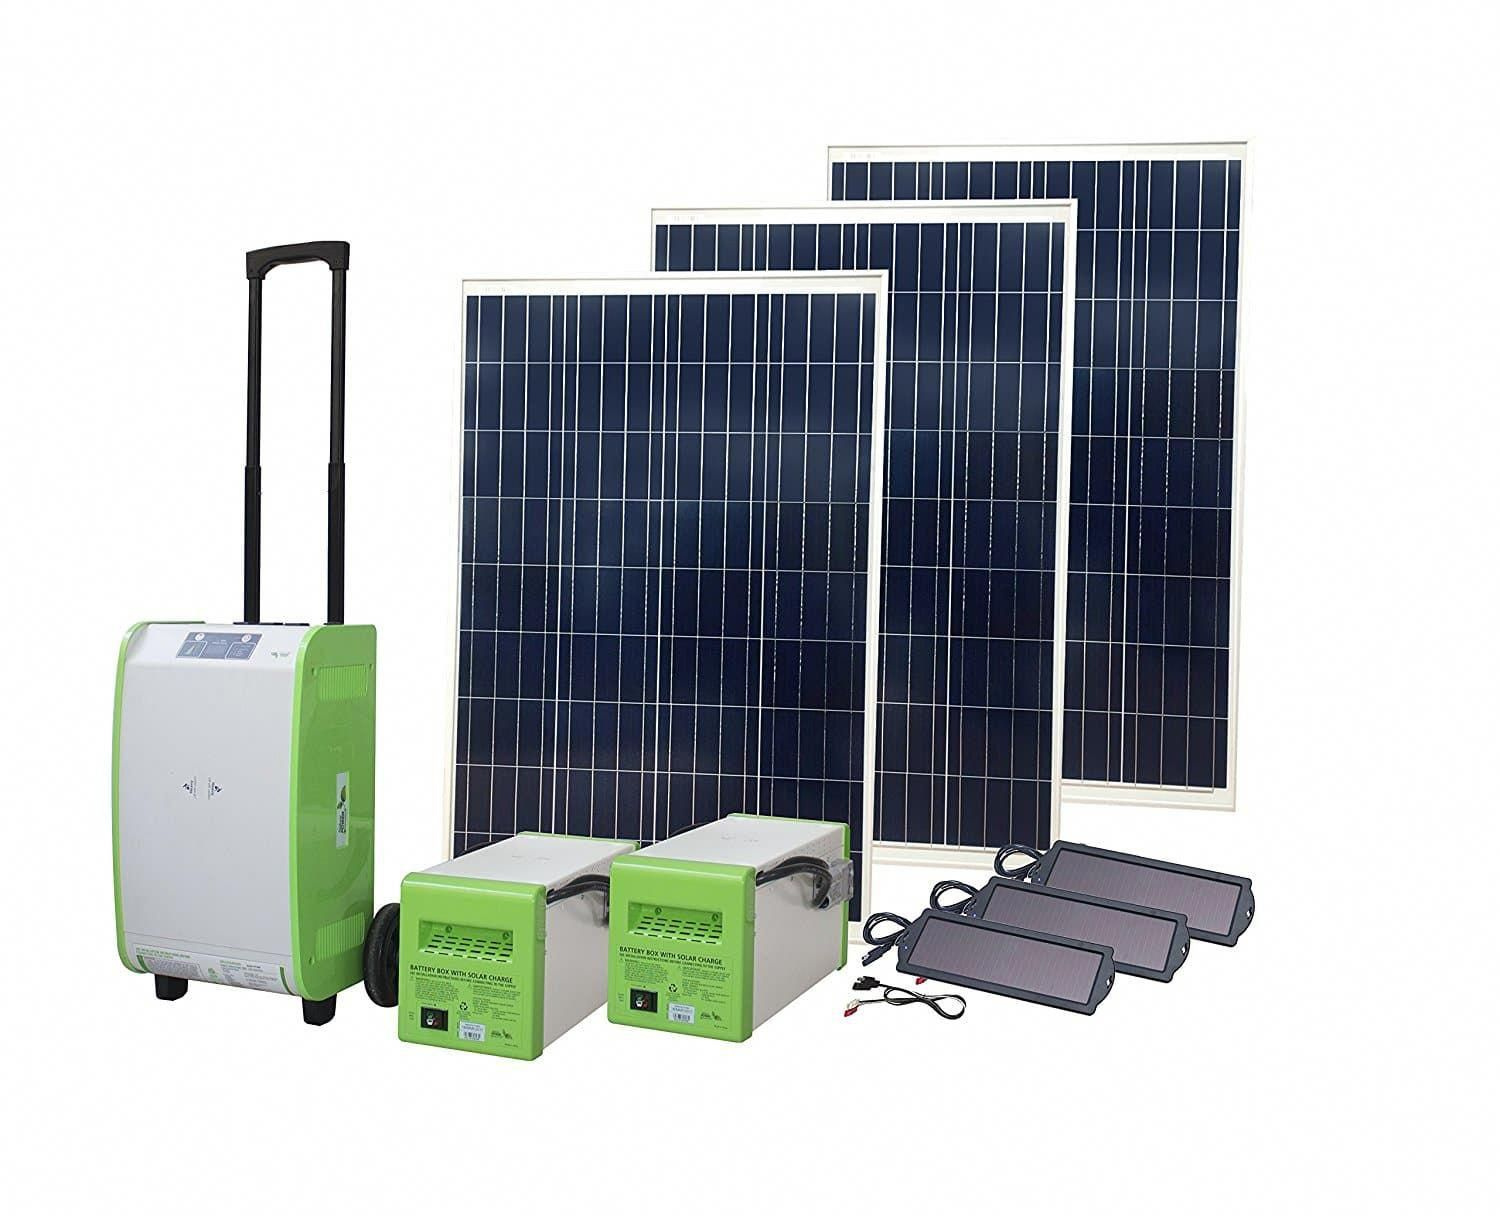 Top 7 Best Solar Generator Kit In 2020 Purchasing Guide For Buyers Hqreview Solar Energy Panels Portable Solar Generator Solar Energy